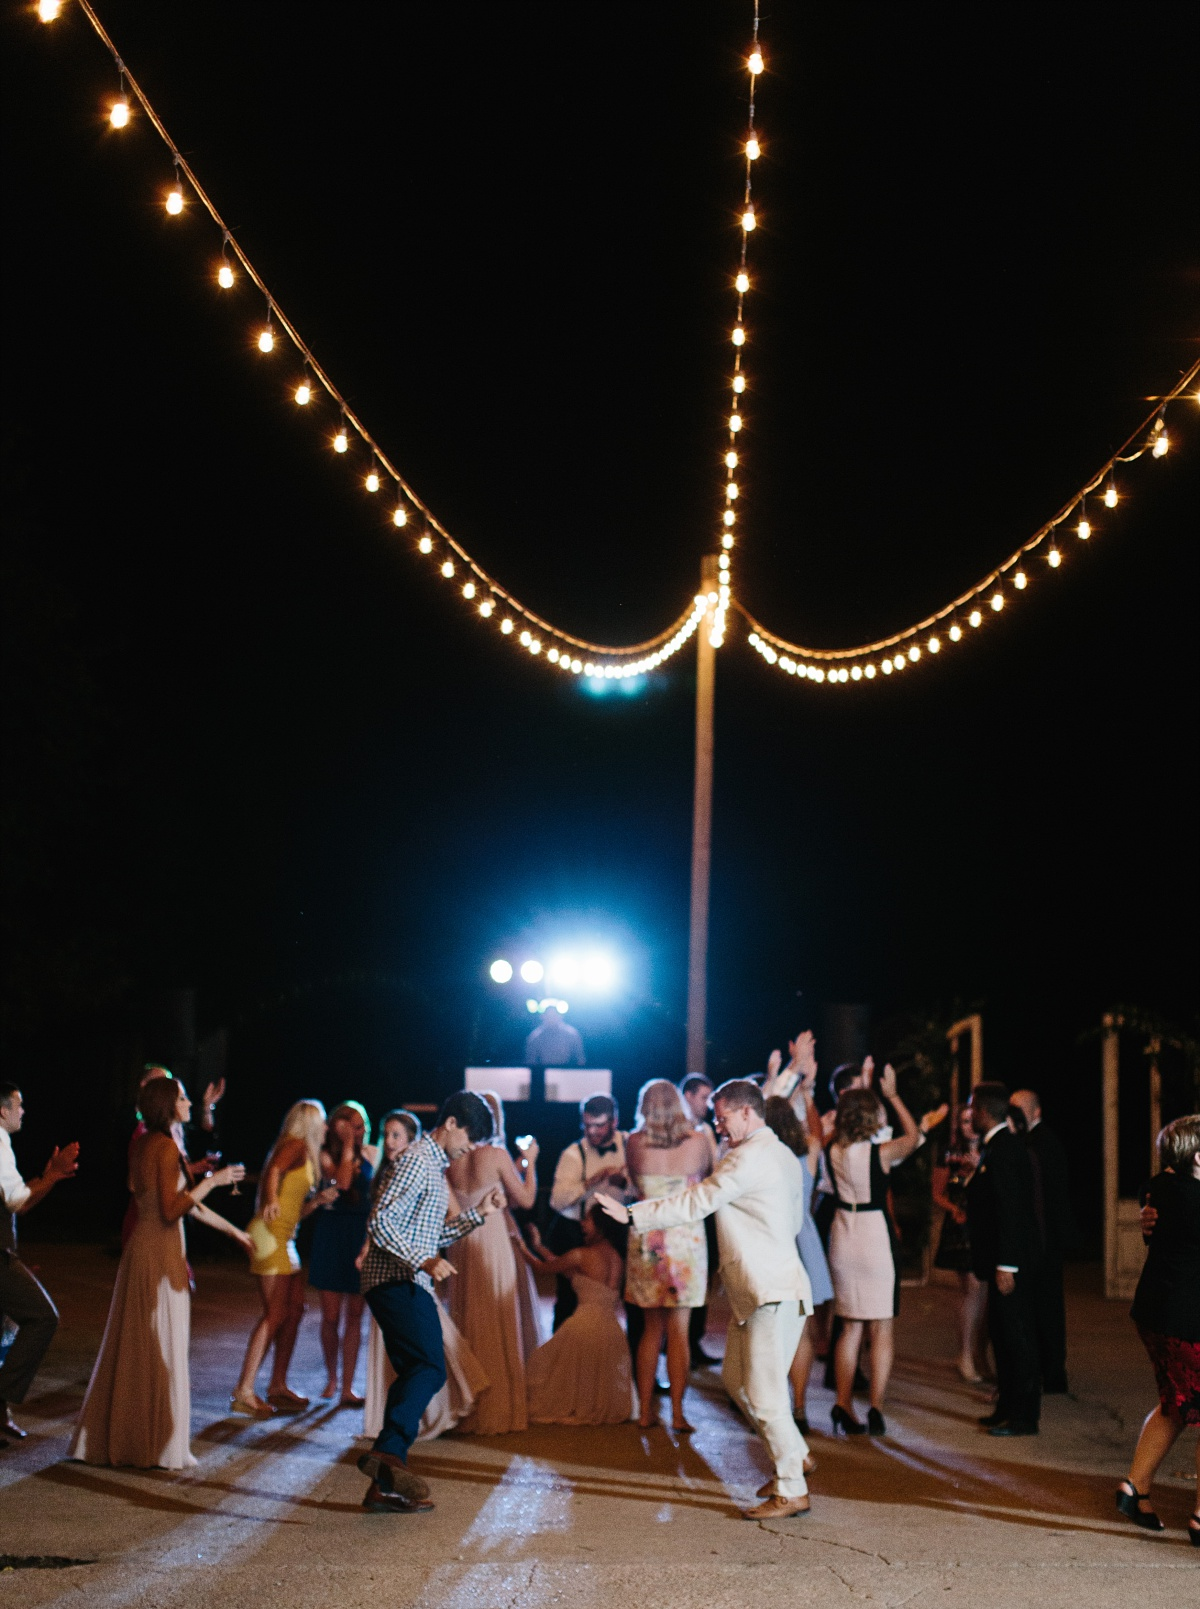 Wedding guests dance in the nighttime outdoor reception